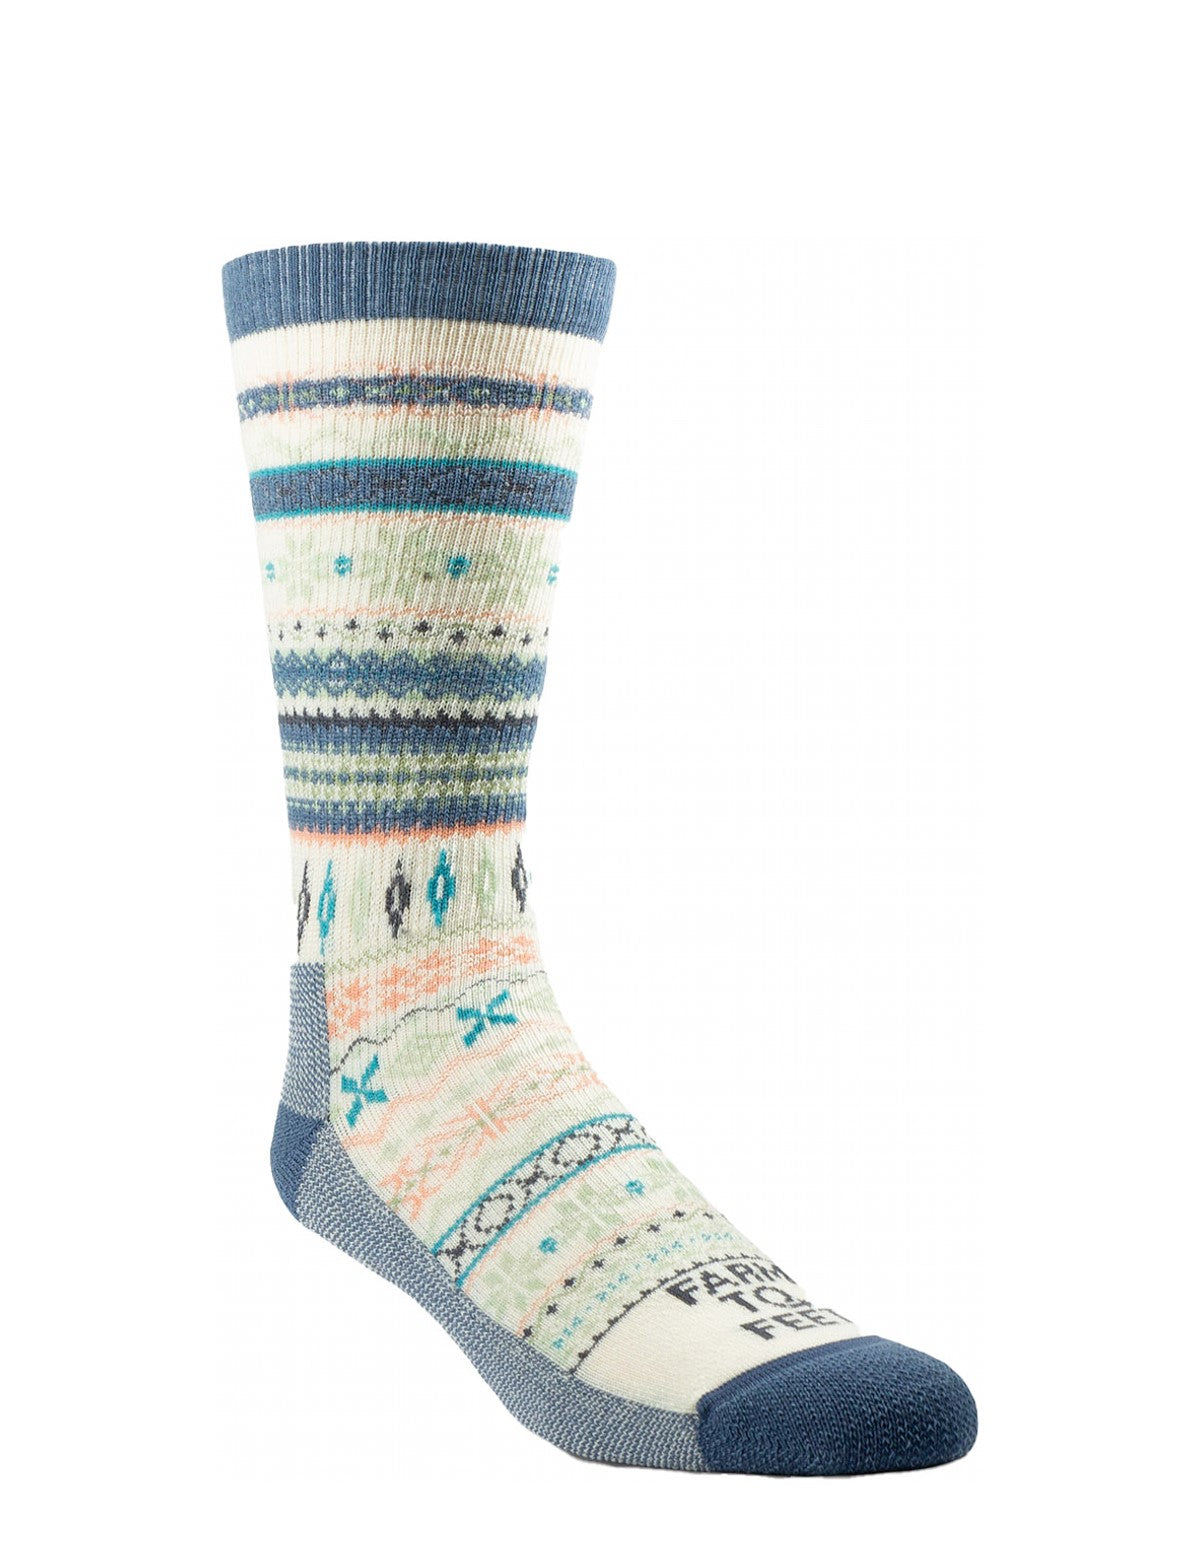 Hamilton - Everyday All-season Fair Isle Crew